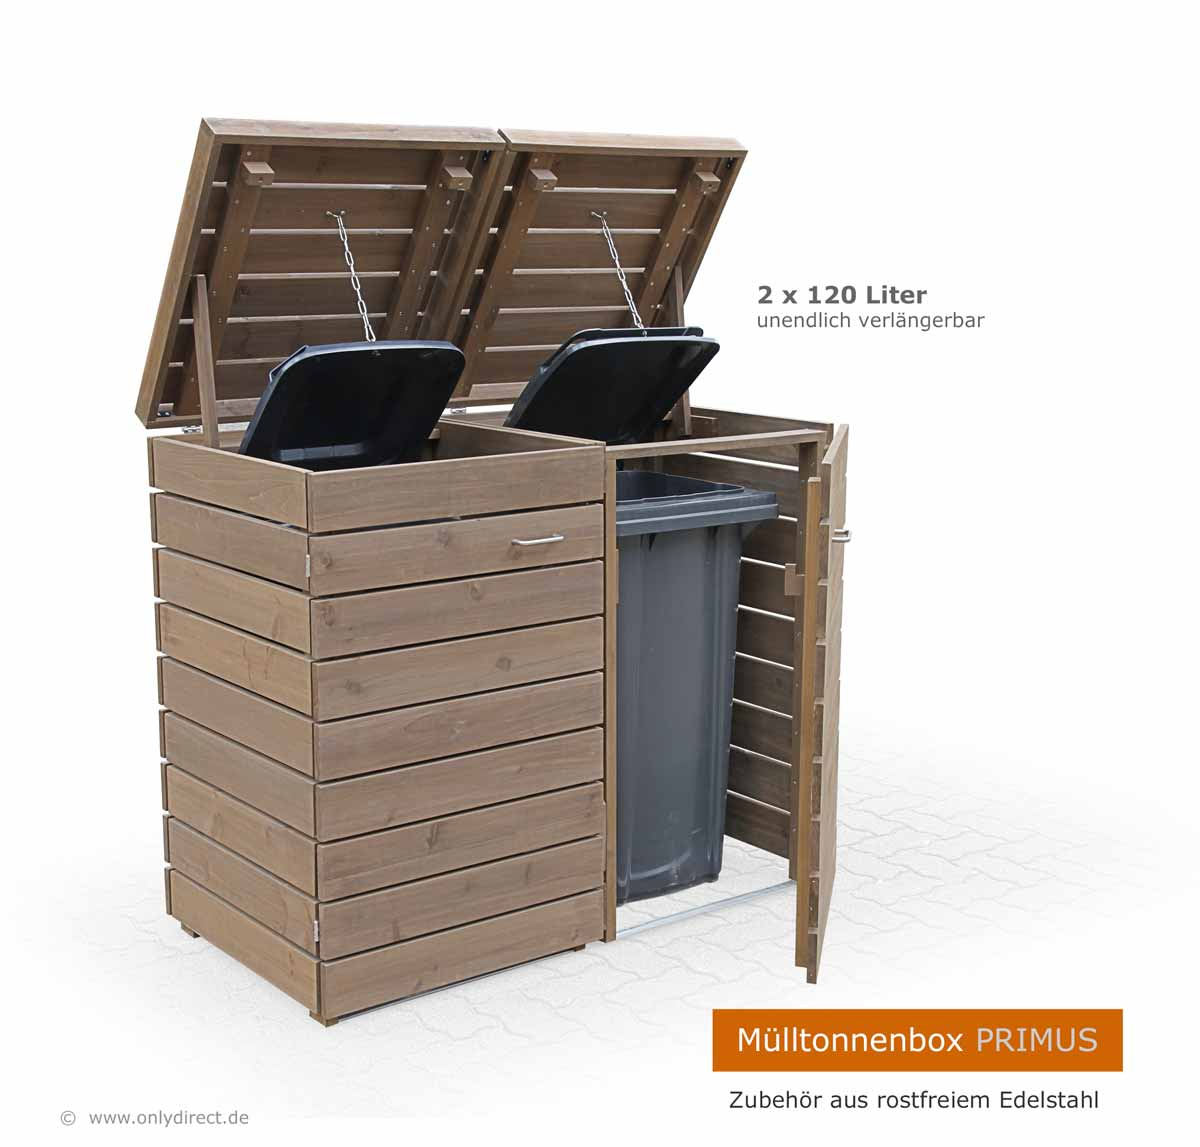 friesenbank shop moderne m lltonnenbox holz fsc zeder f r 2 x 240 liter. Black Bedroom Furniture Sets. Home Design Ideas